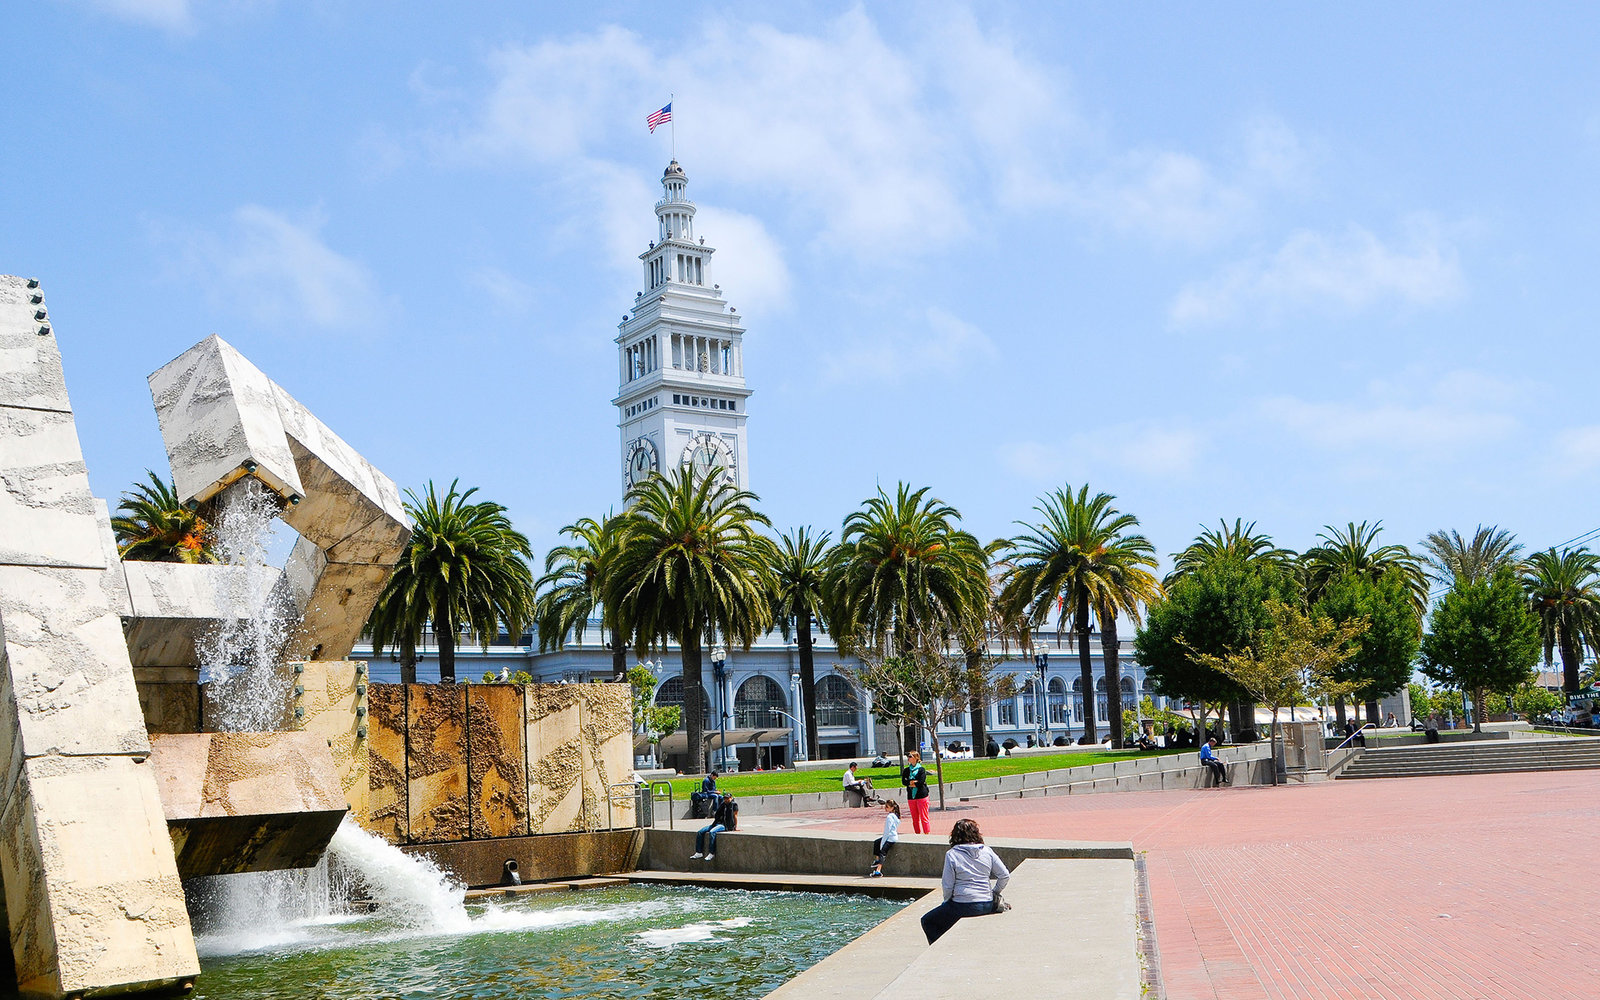 CXNR8P Justin Herman Plaza / Ferry Building - San Francisco. Image shot 2012. Exact date unknown.